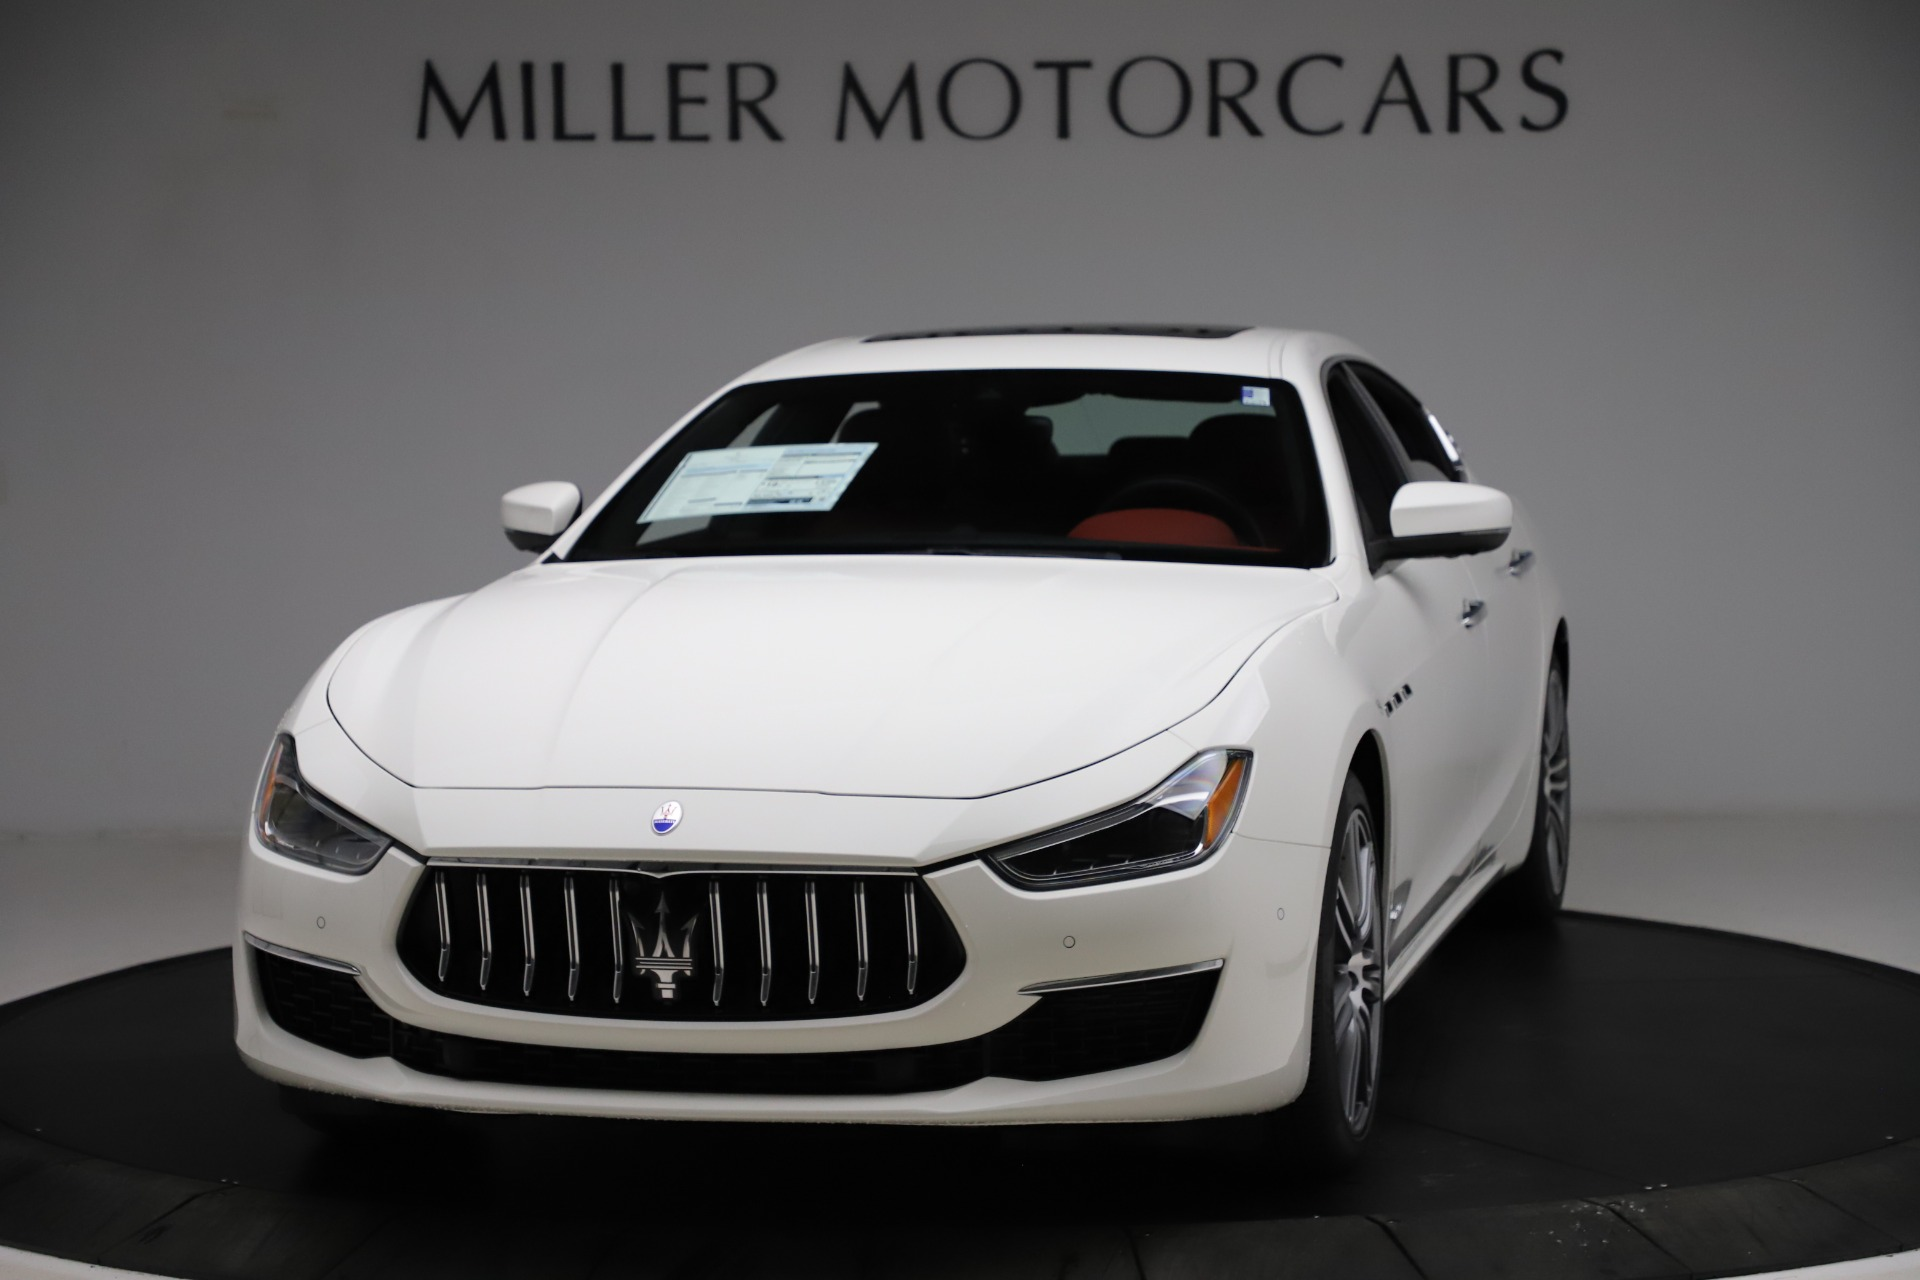 New 2021 Maserati Ghibli S Q4 GranLusso for sale $95,835 at Bentley Greenwich in Greenwich CT 06830 1